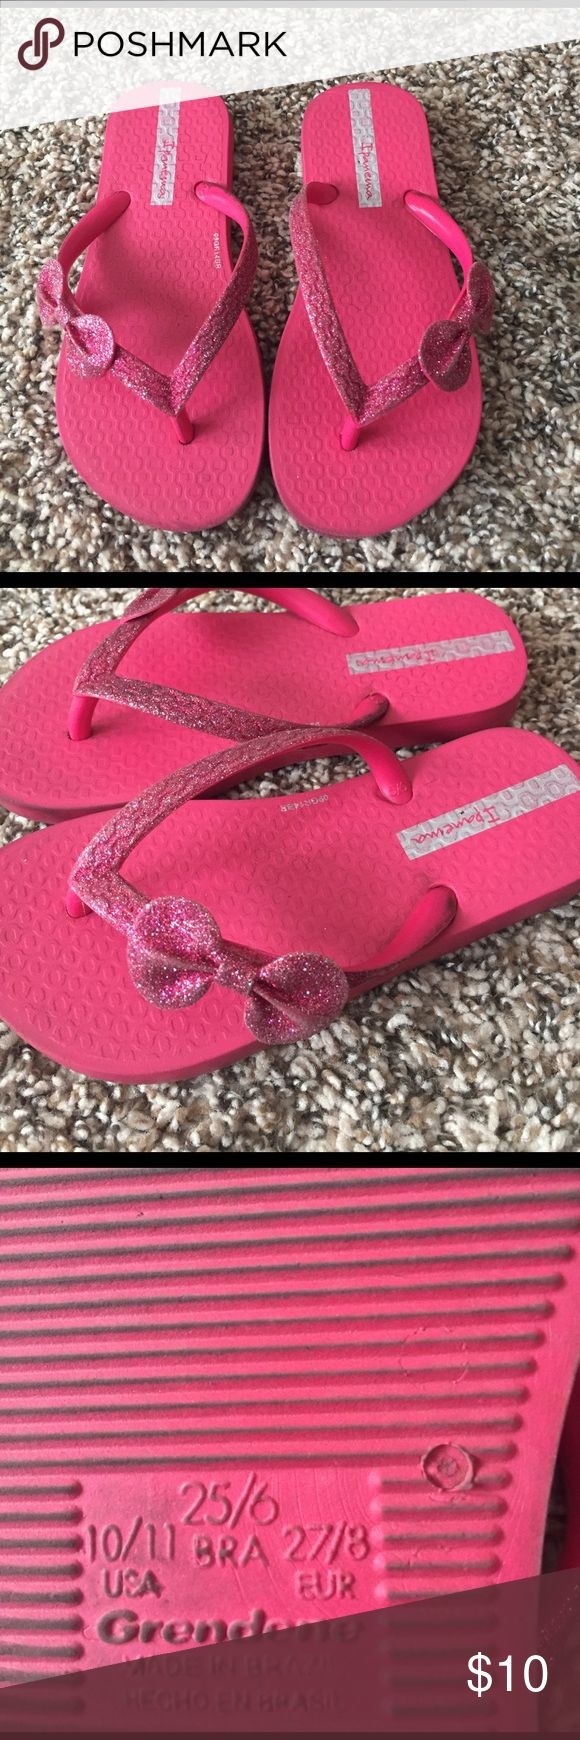 Adorable pink flip flops purchased at Nordstrom GUC.  A lot of life left and cute! size is 10/11 grendene Shoes Sandals & Flip Flops